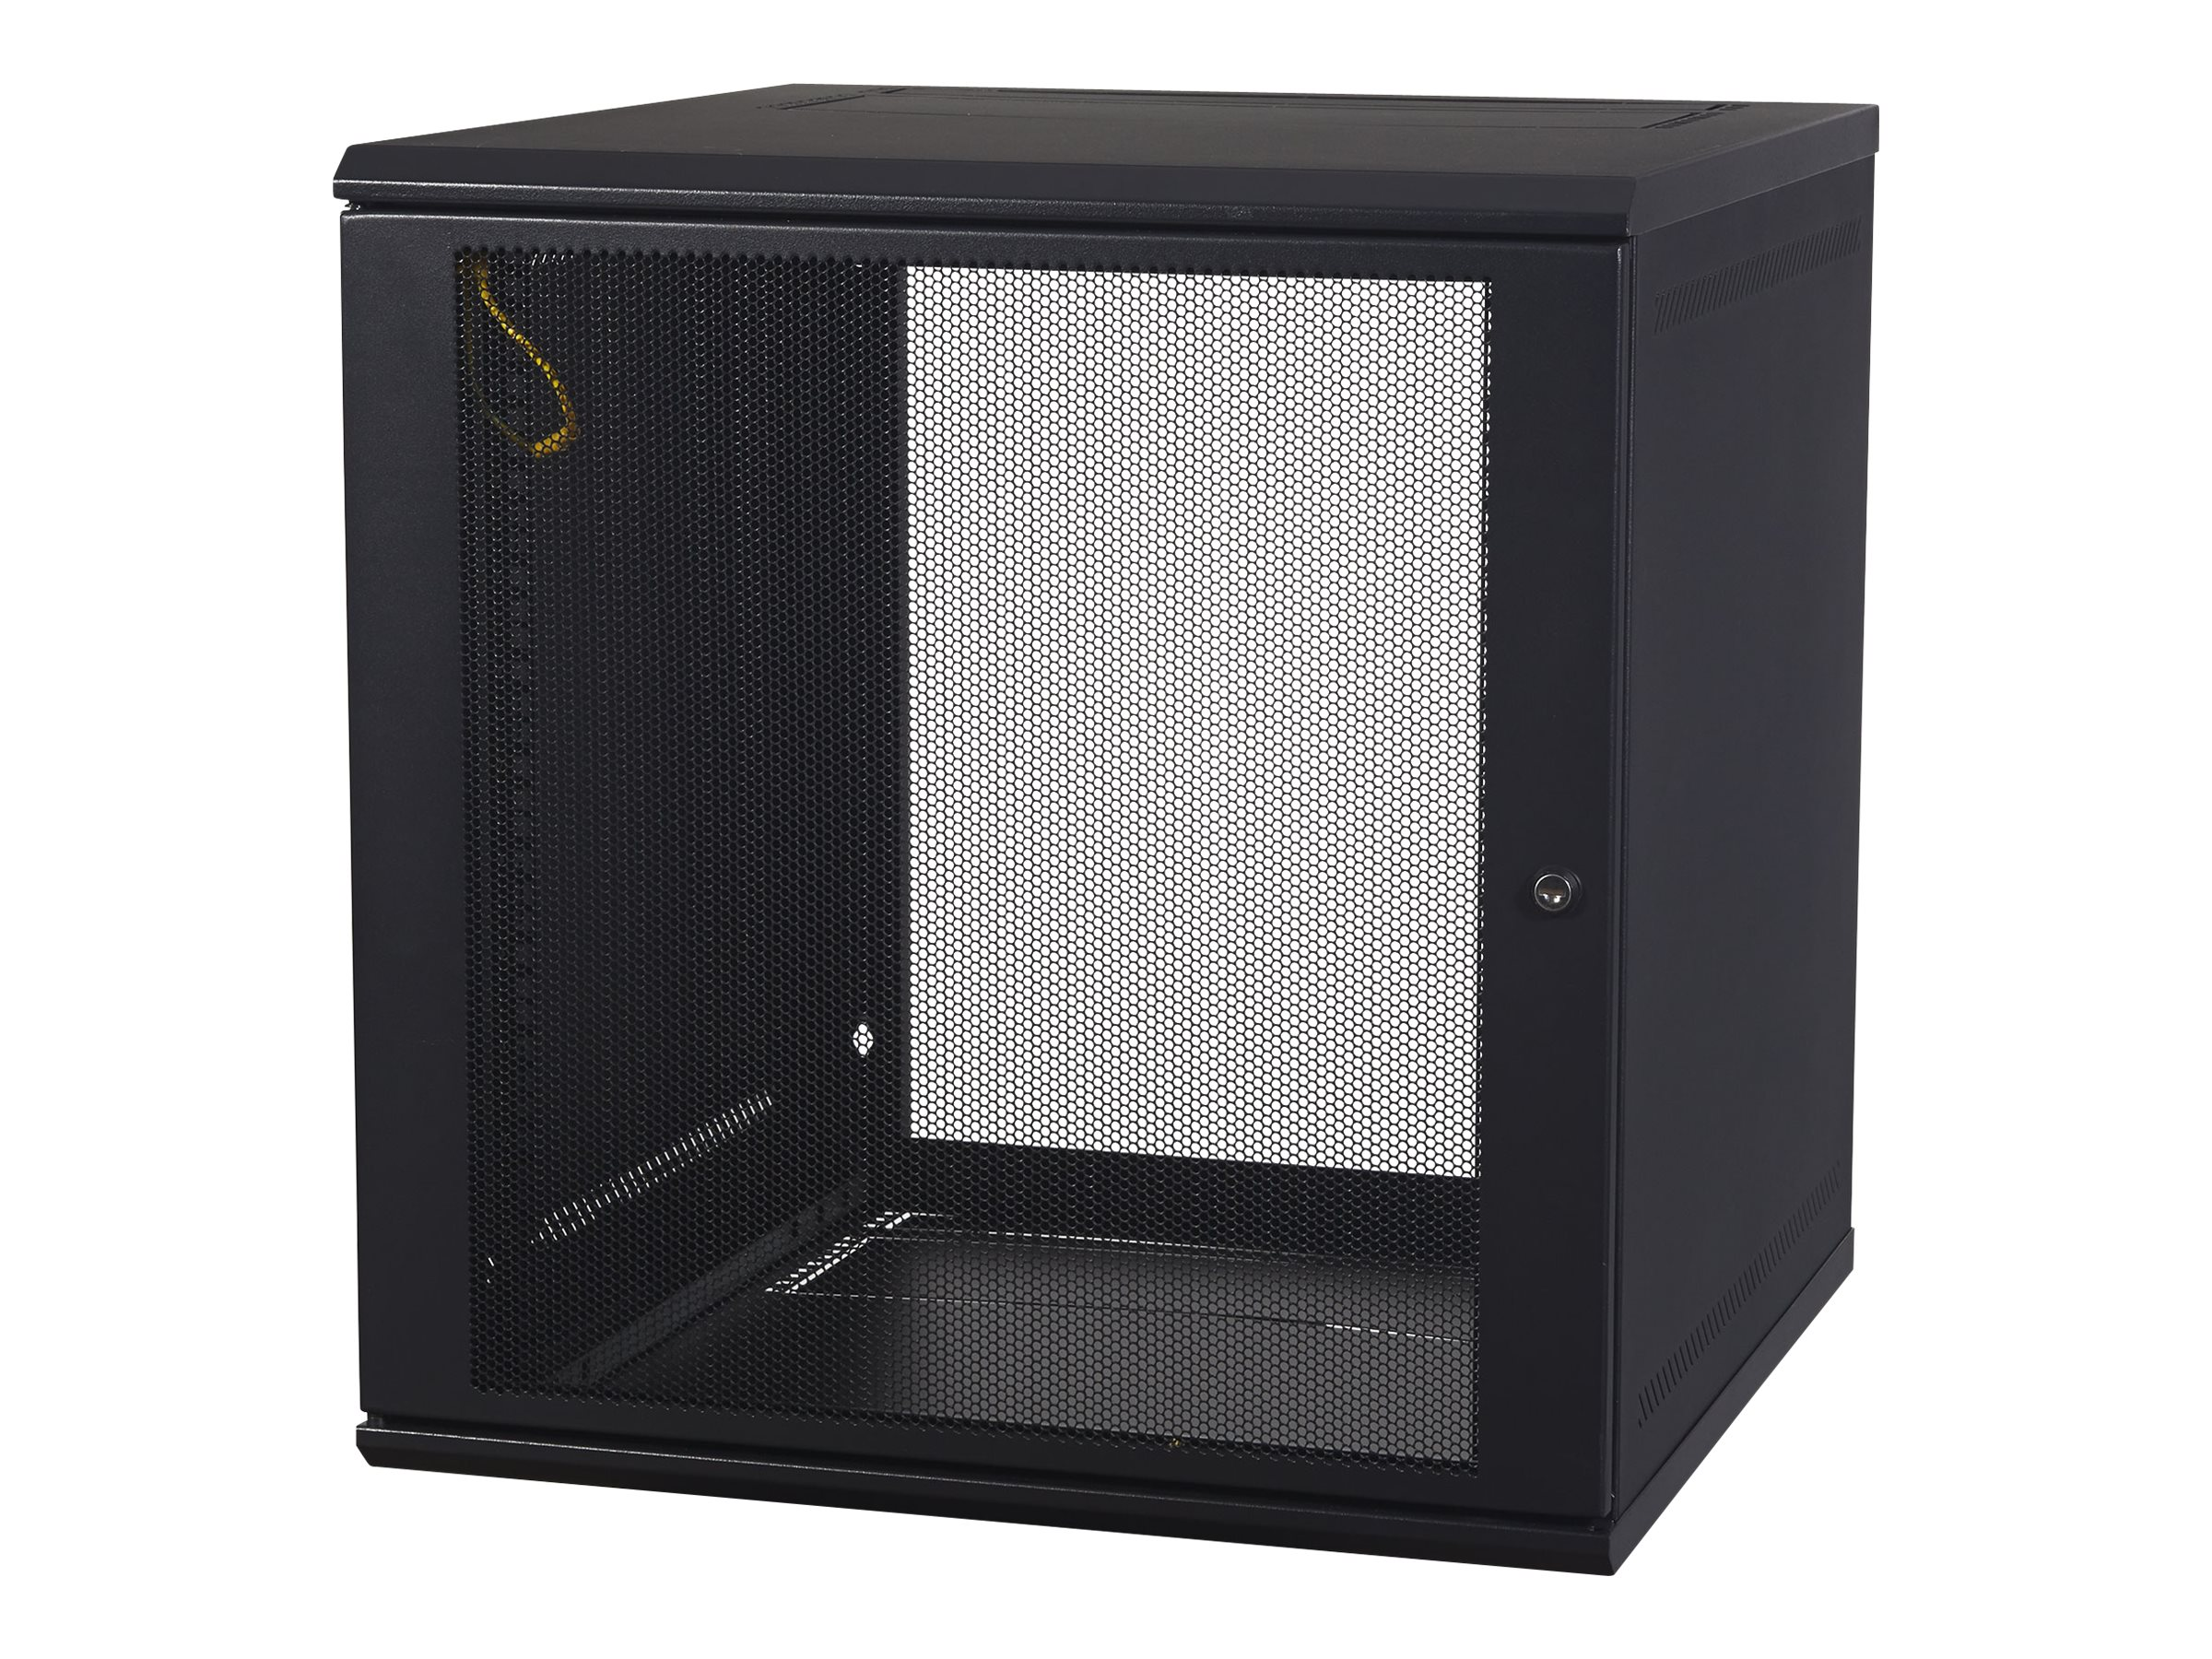 APC Netshelter WX 12U Wall Mount Cabinet, Instant Rebate - Save $35, AR112